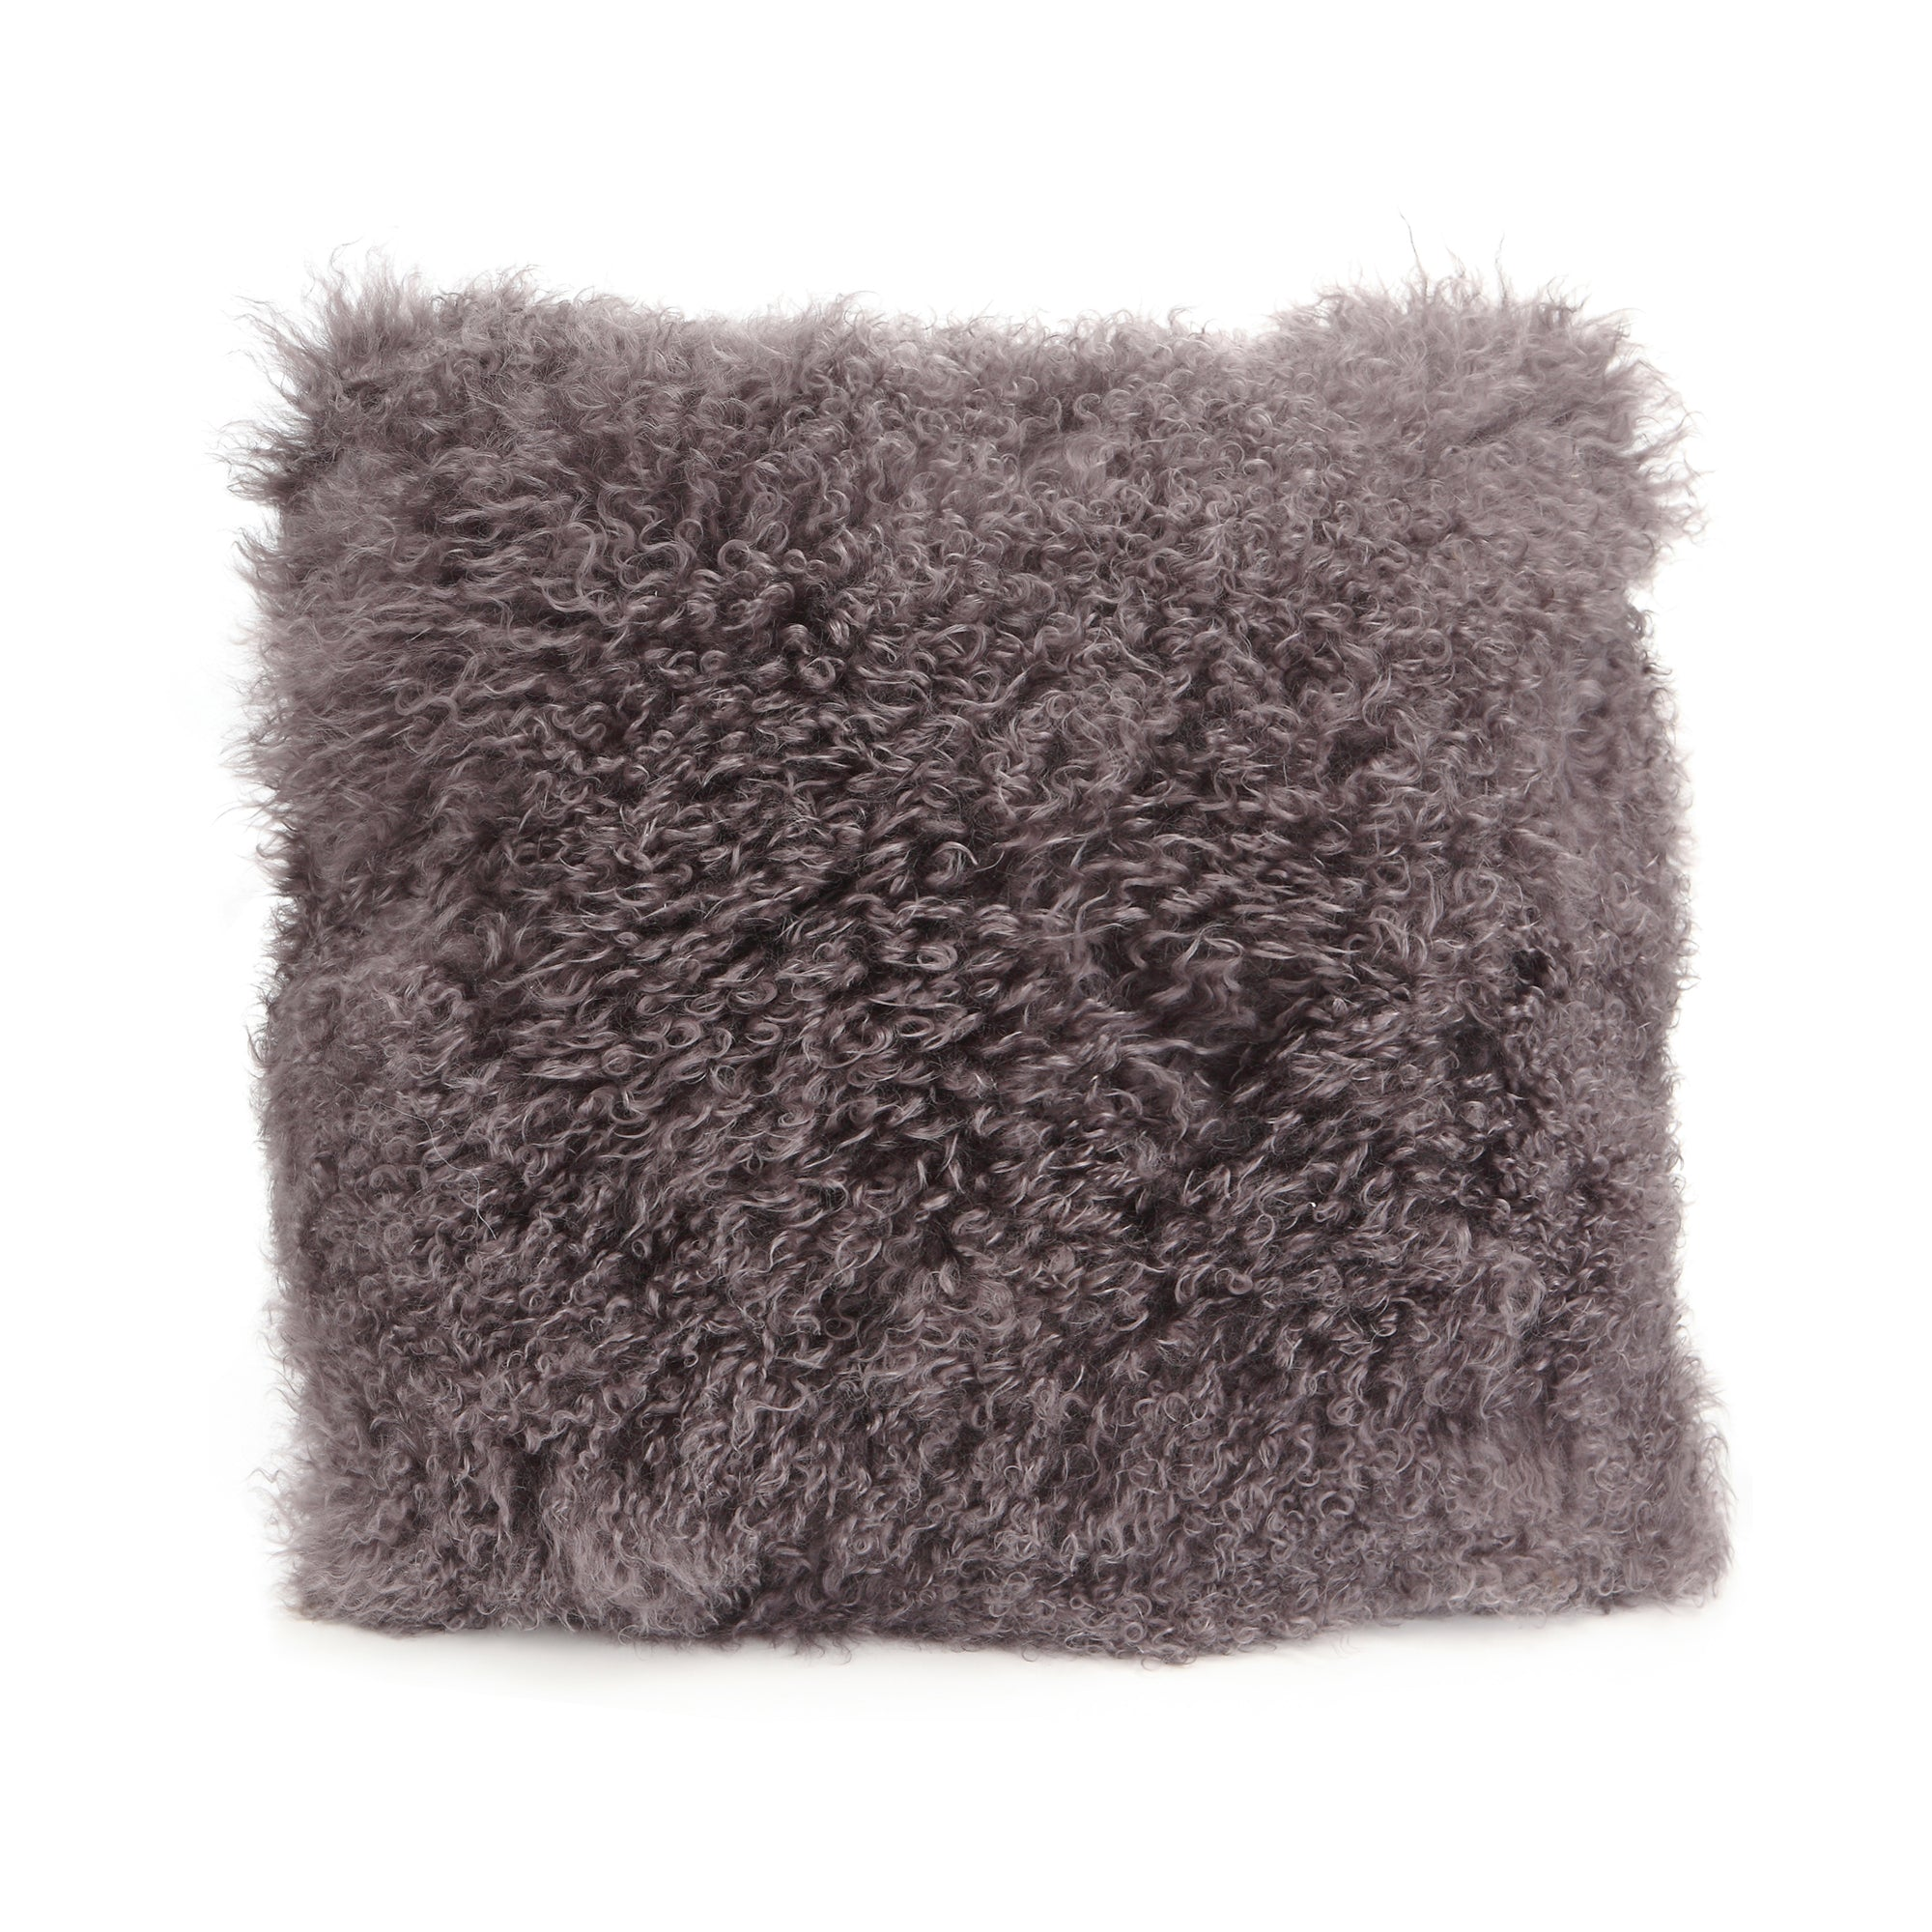 Lamb fur pillow large, grey - Tops-Dress